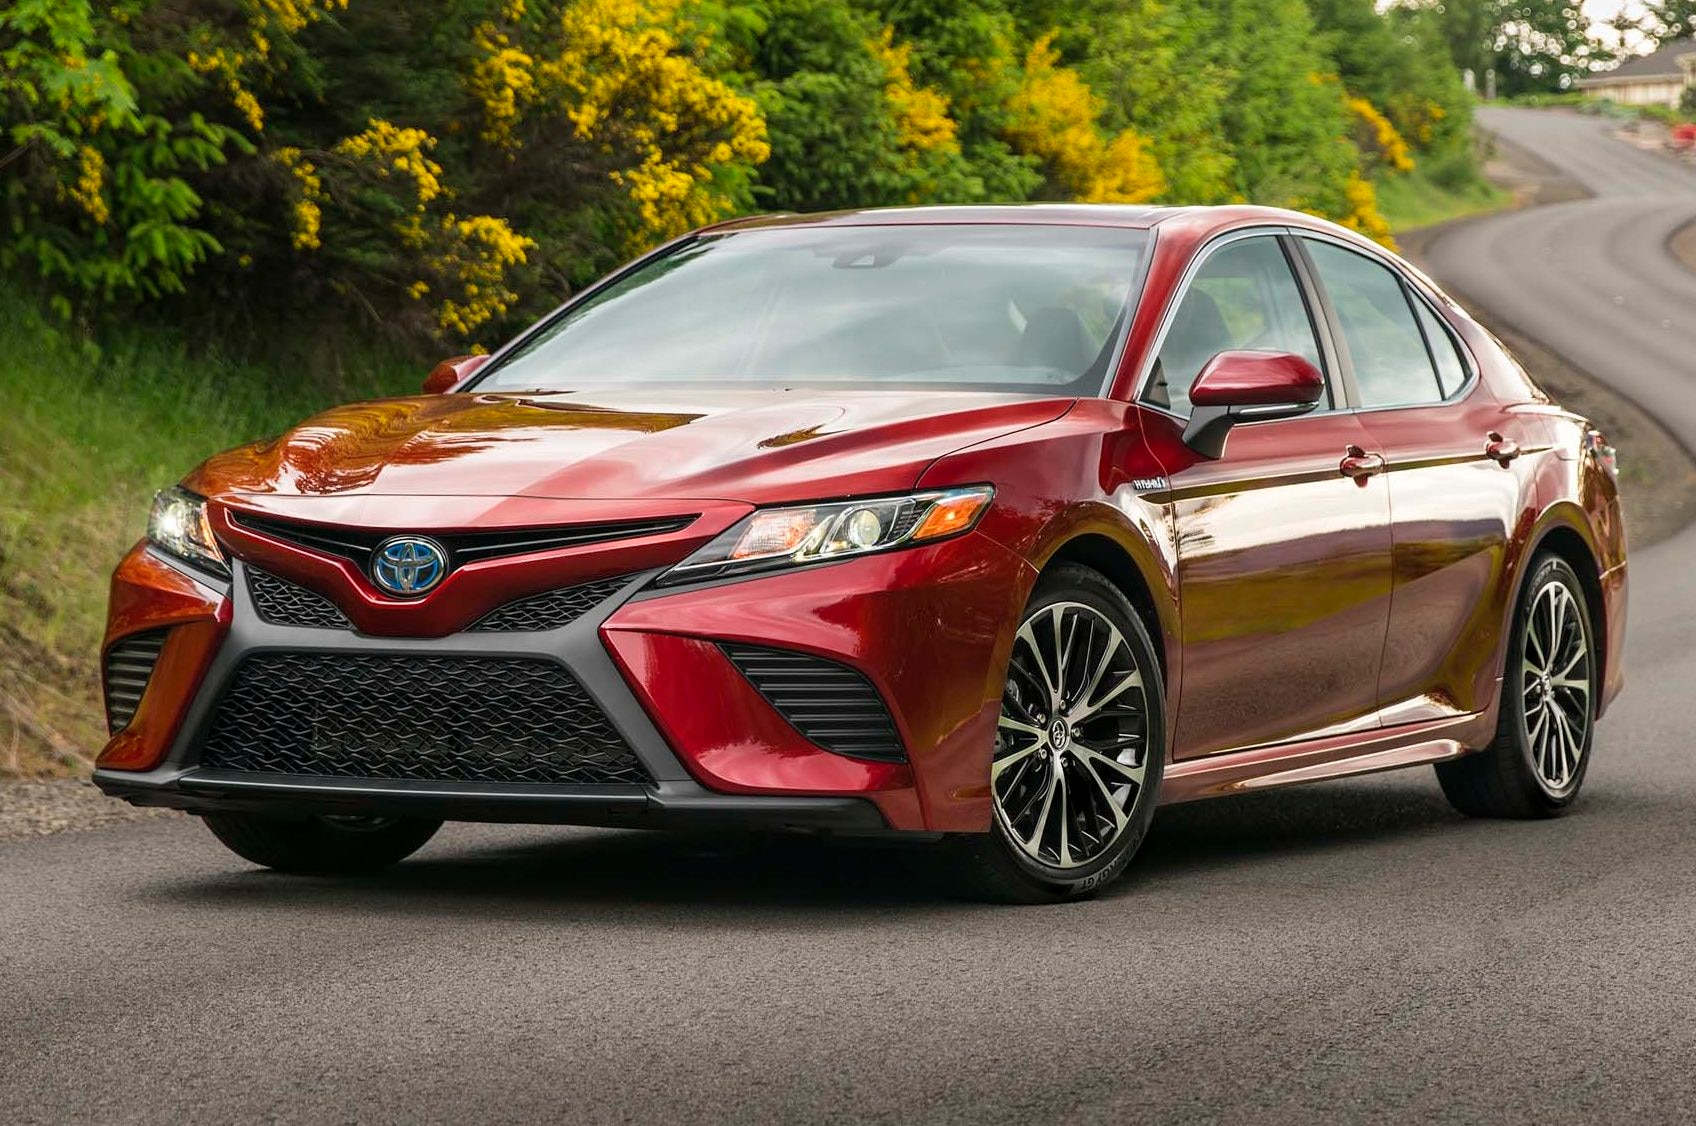 2018 toyota camry enters production in kentucky automobile magazine. Black Bedroom Furniture Sets. Home Design Ideas